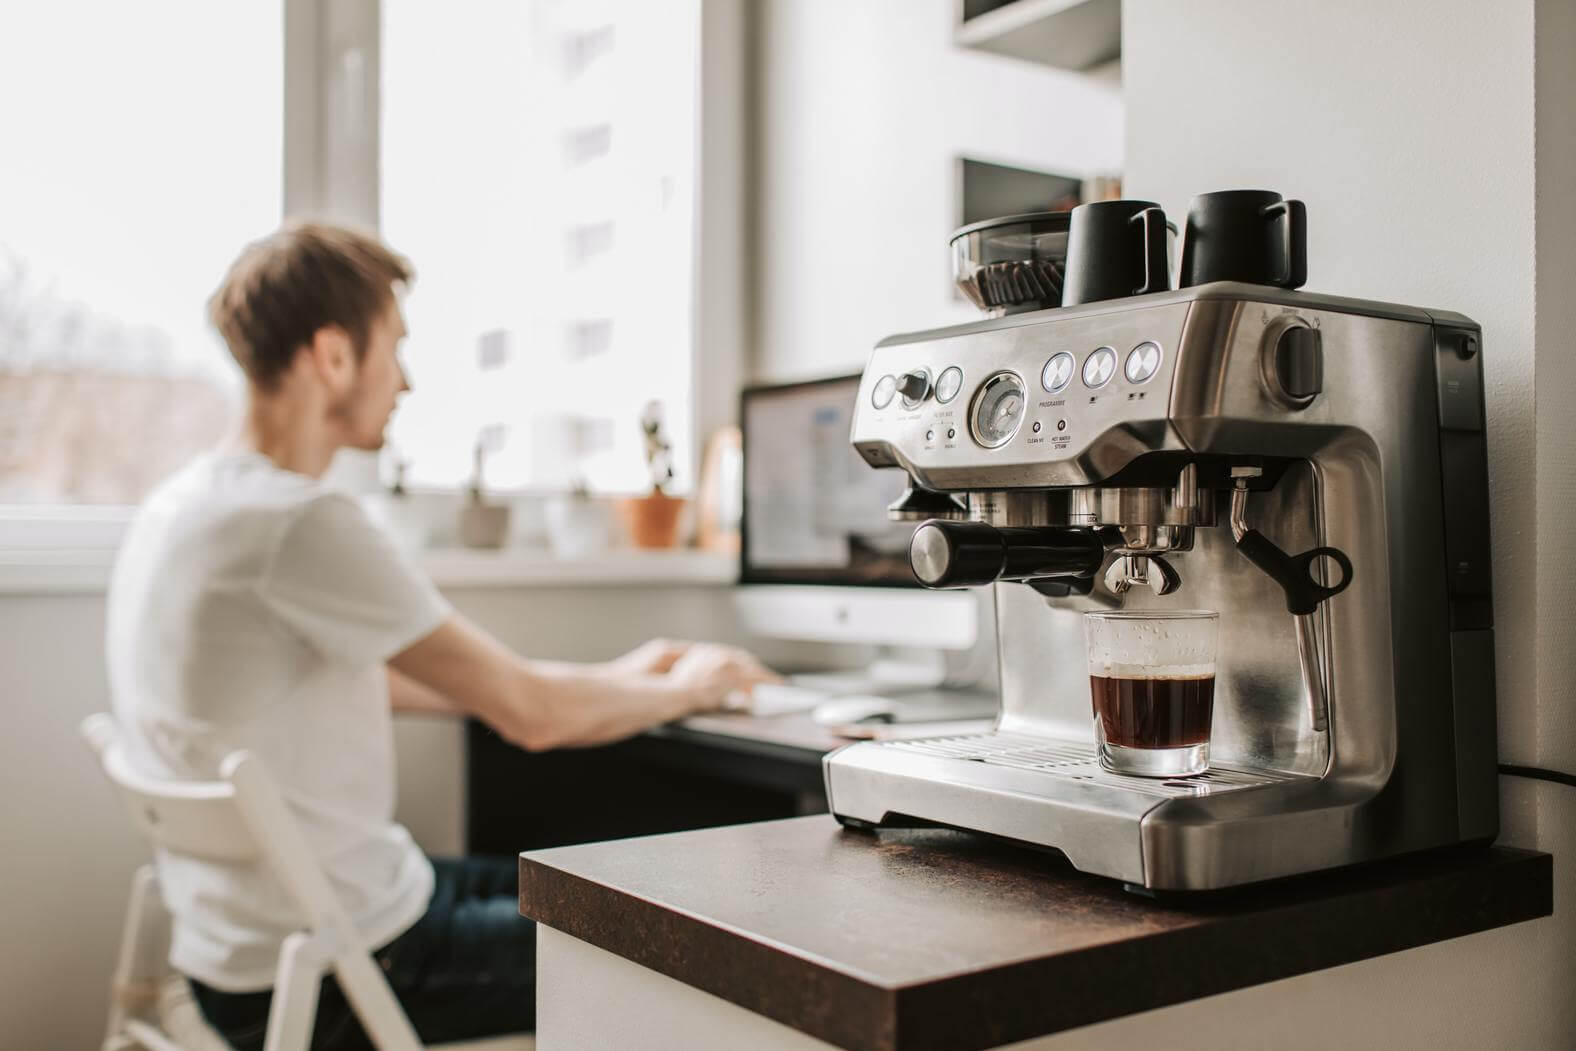 Man working in background with coffee machine on side